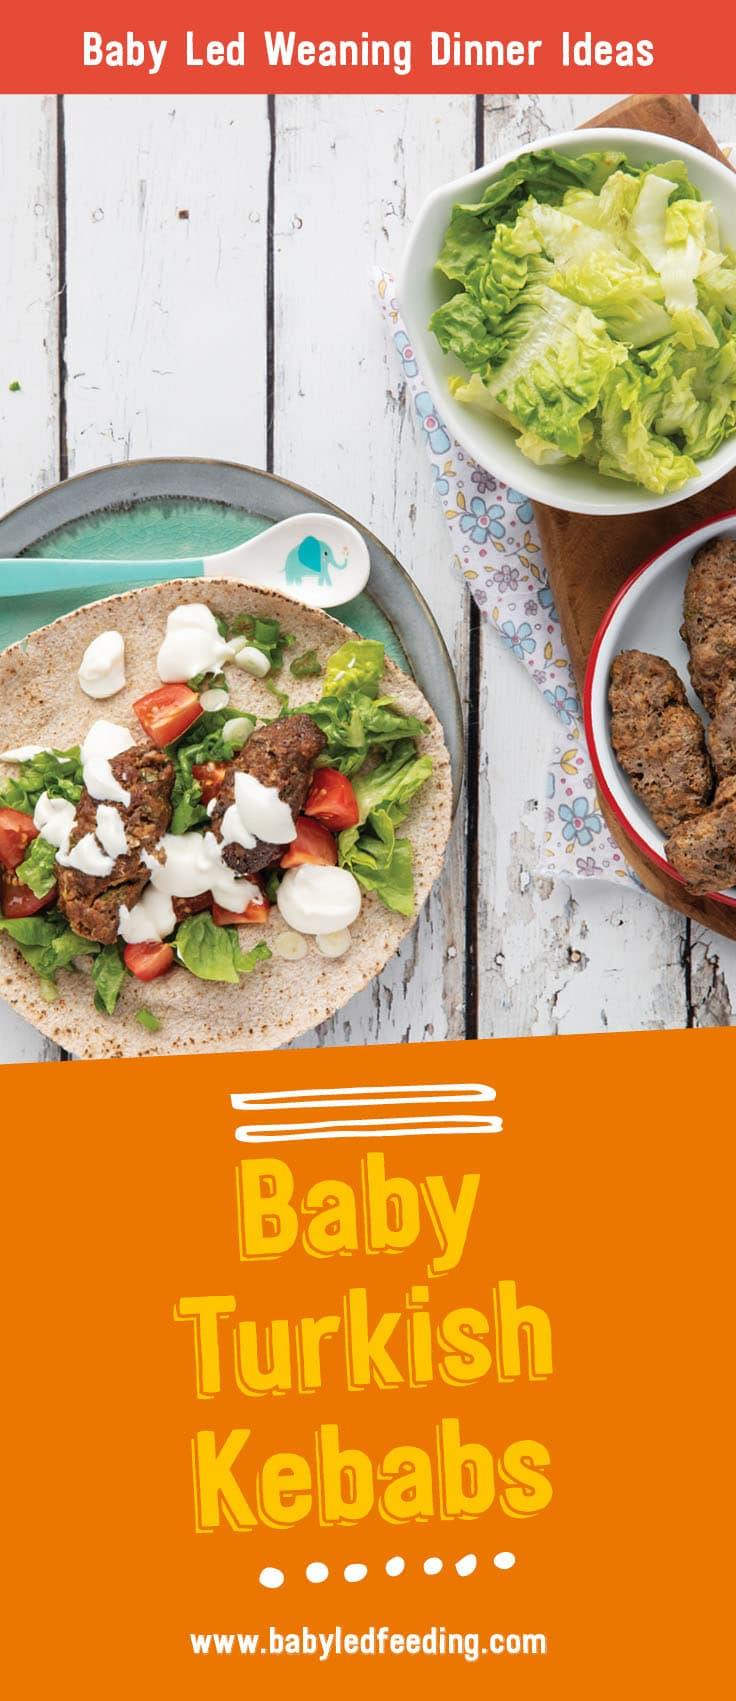 Baby Led weaning Turkish Kebabs Turkish Kebabs make the perfect healthy family friendly baby led weaning dinner. This easy recipe can be frozen and served as an easy finger food later.